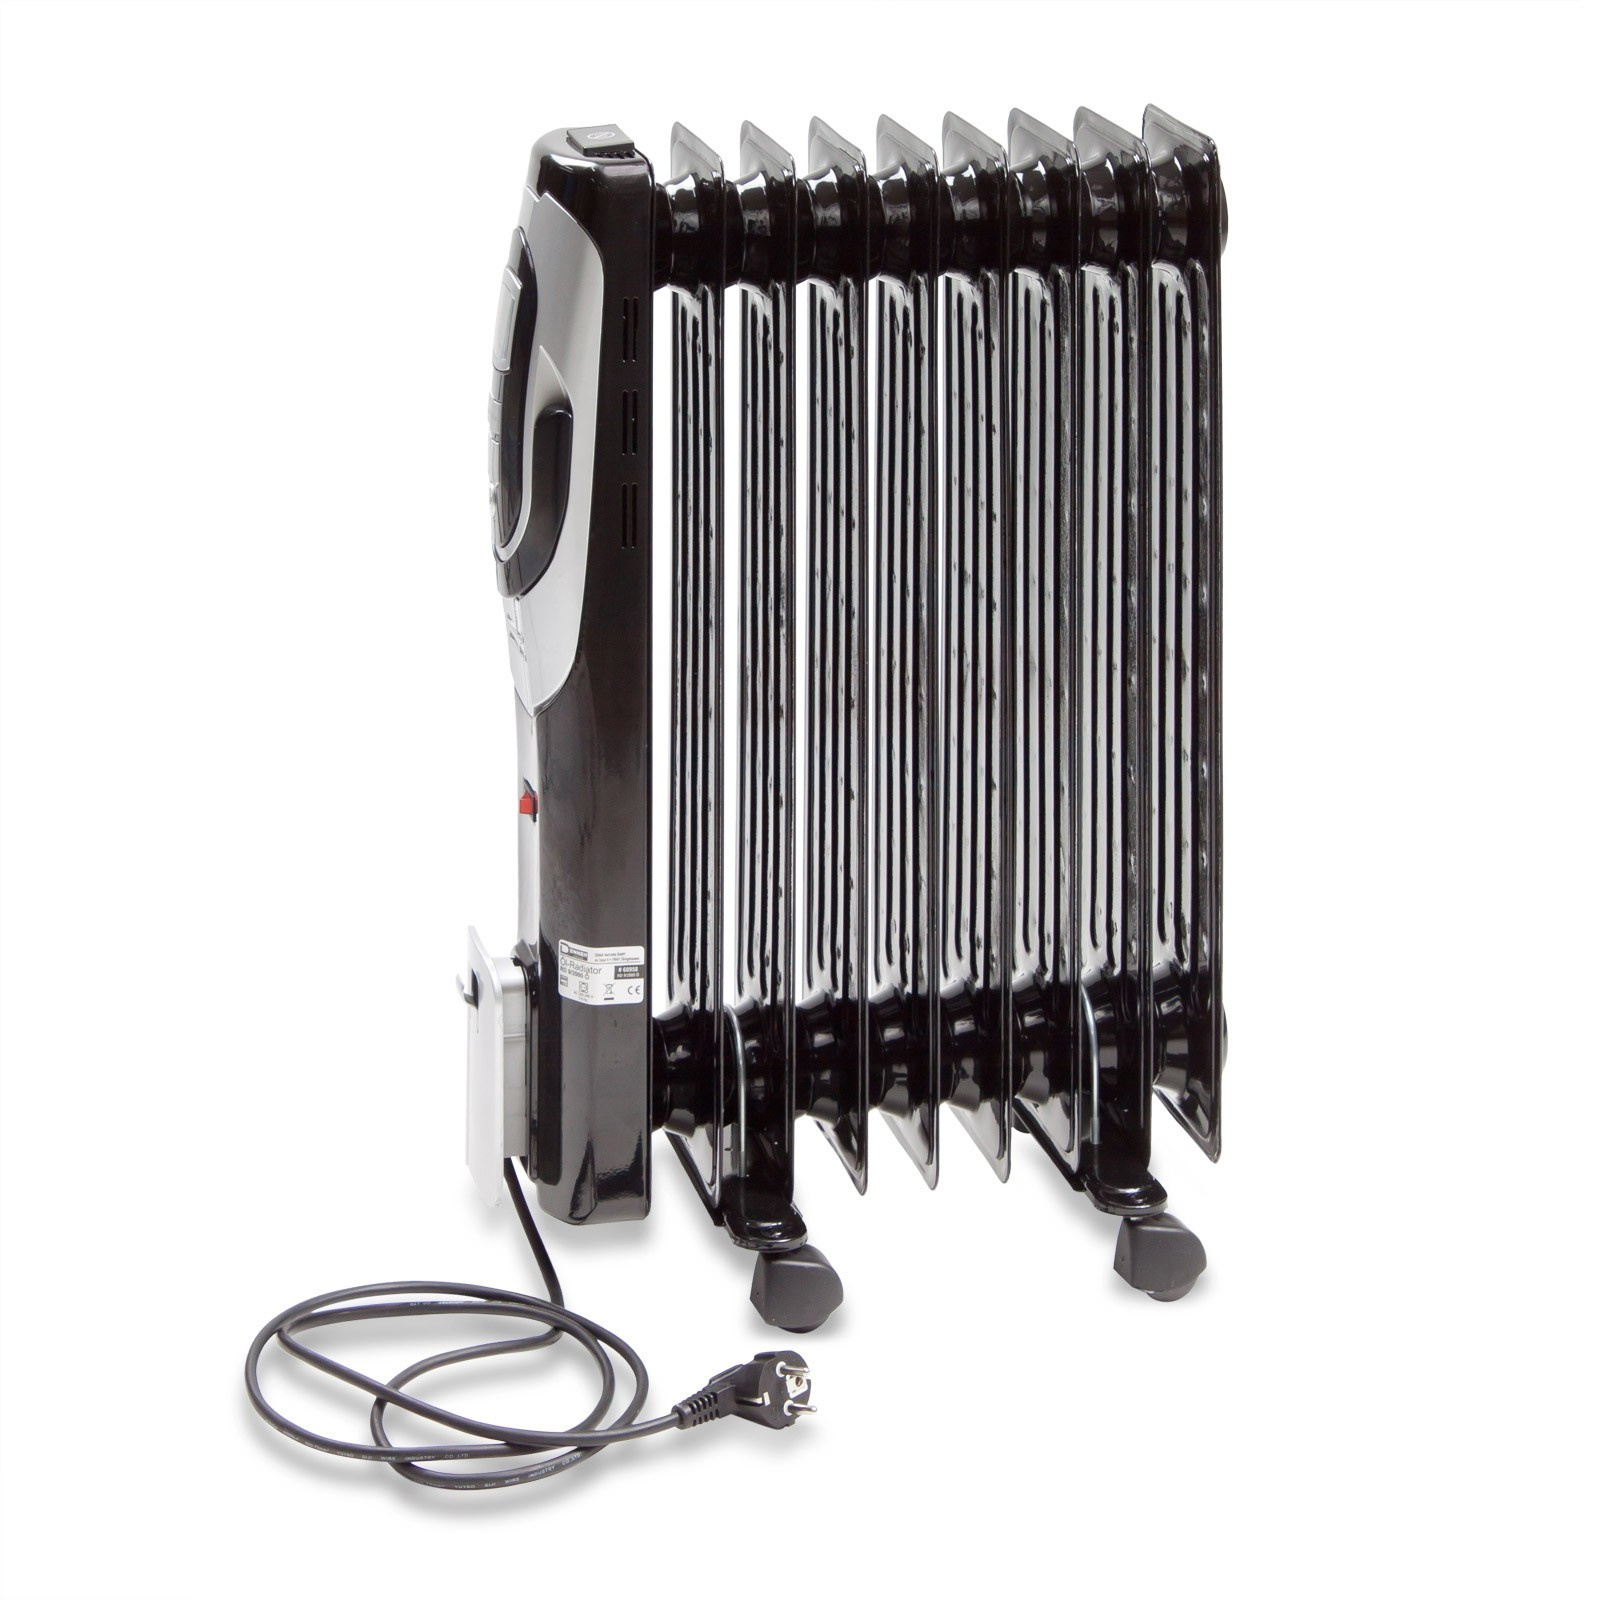 lradiator elektroheizung 9 rippen 2000 watt. Black Bedroom Furniture Sets. Home Design Ideas